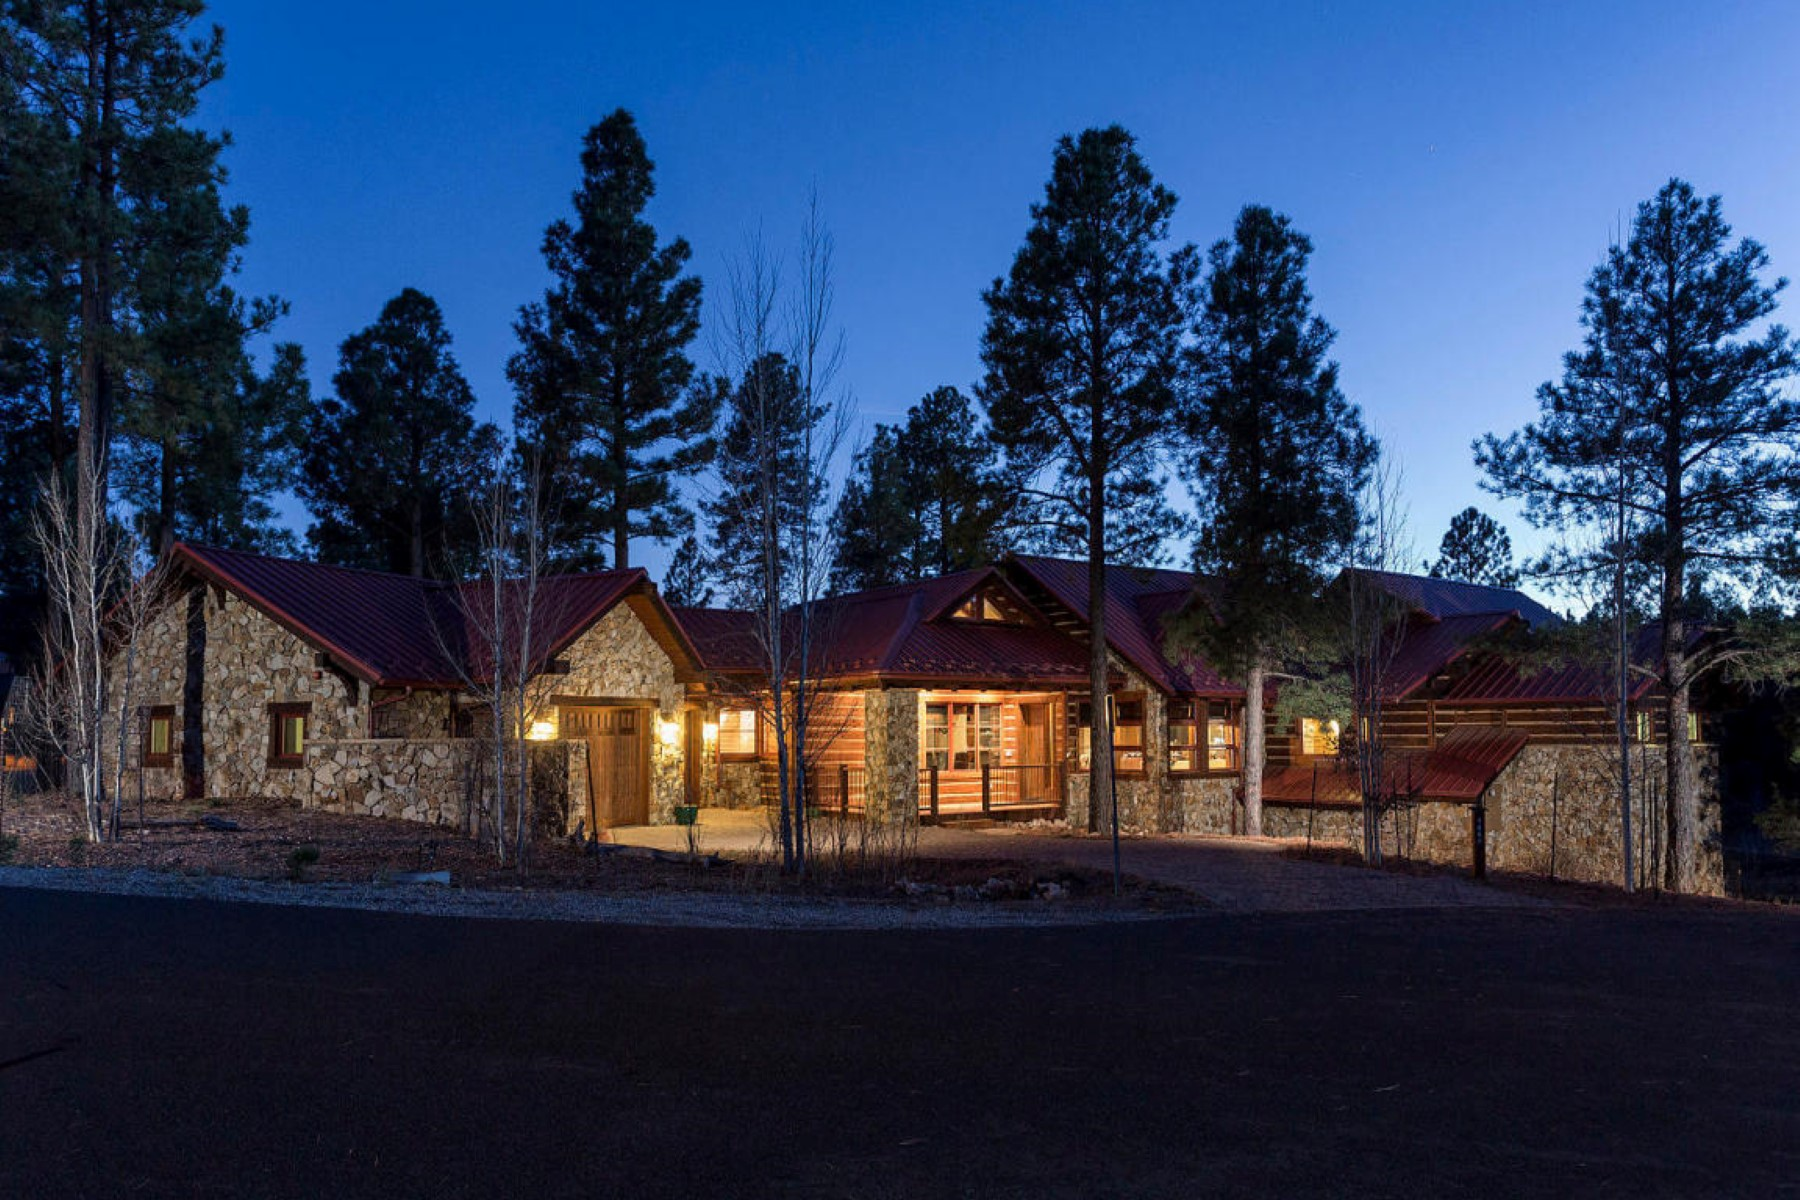 Einfamilienhaus für Verkauf beim Incredible Luxury Mountain Home On a Prime Cul-de-Sac in Exclusive Pine Canyon 1887 E Marengo Court Flagstaff, Arizona, 86005 Vereinigte Staaten